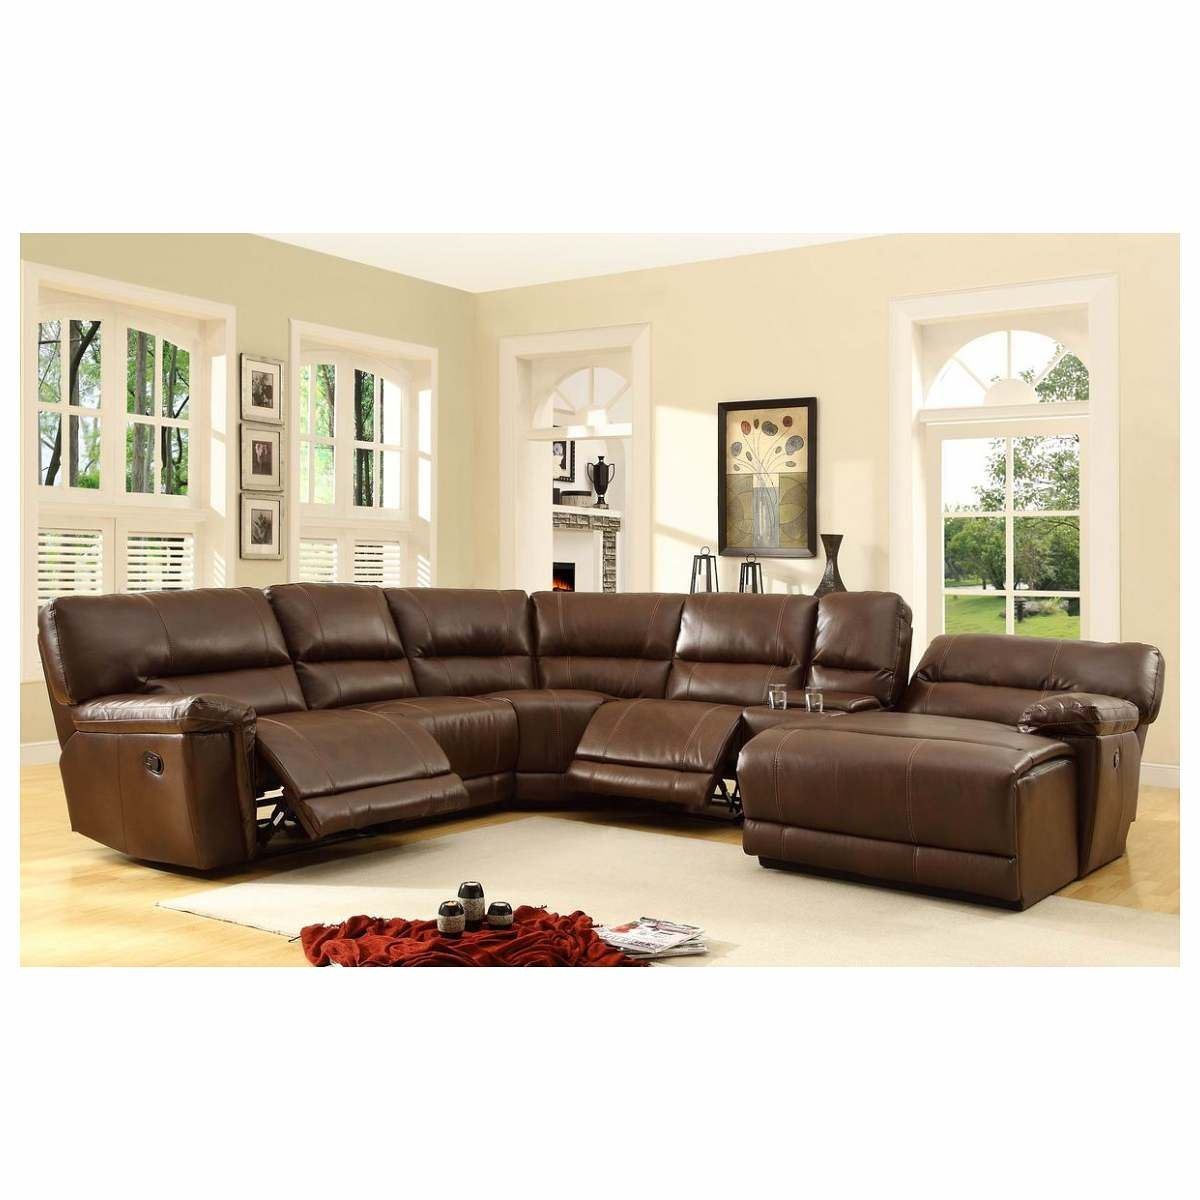 6 Pc Blythe Collection Brown Bonded Leather Match Upholstered Reclining  Sectional Sofa Set With Chaise Part 94